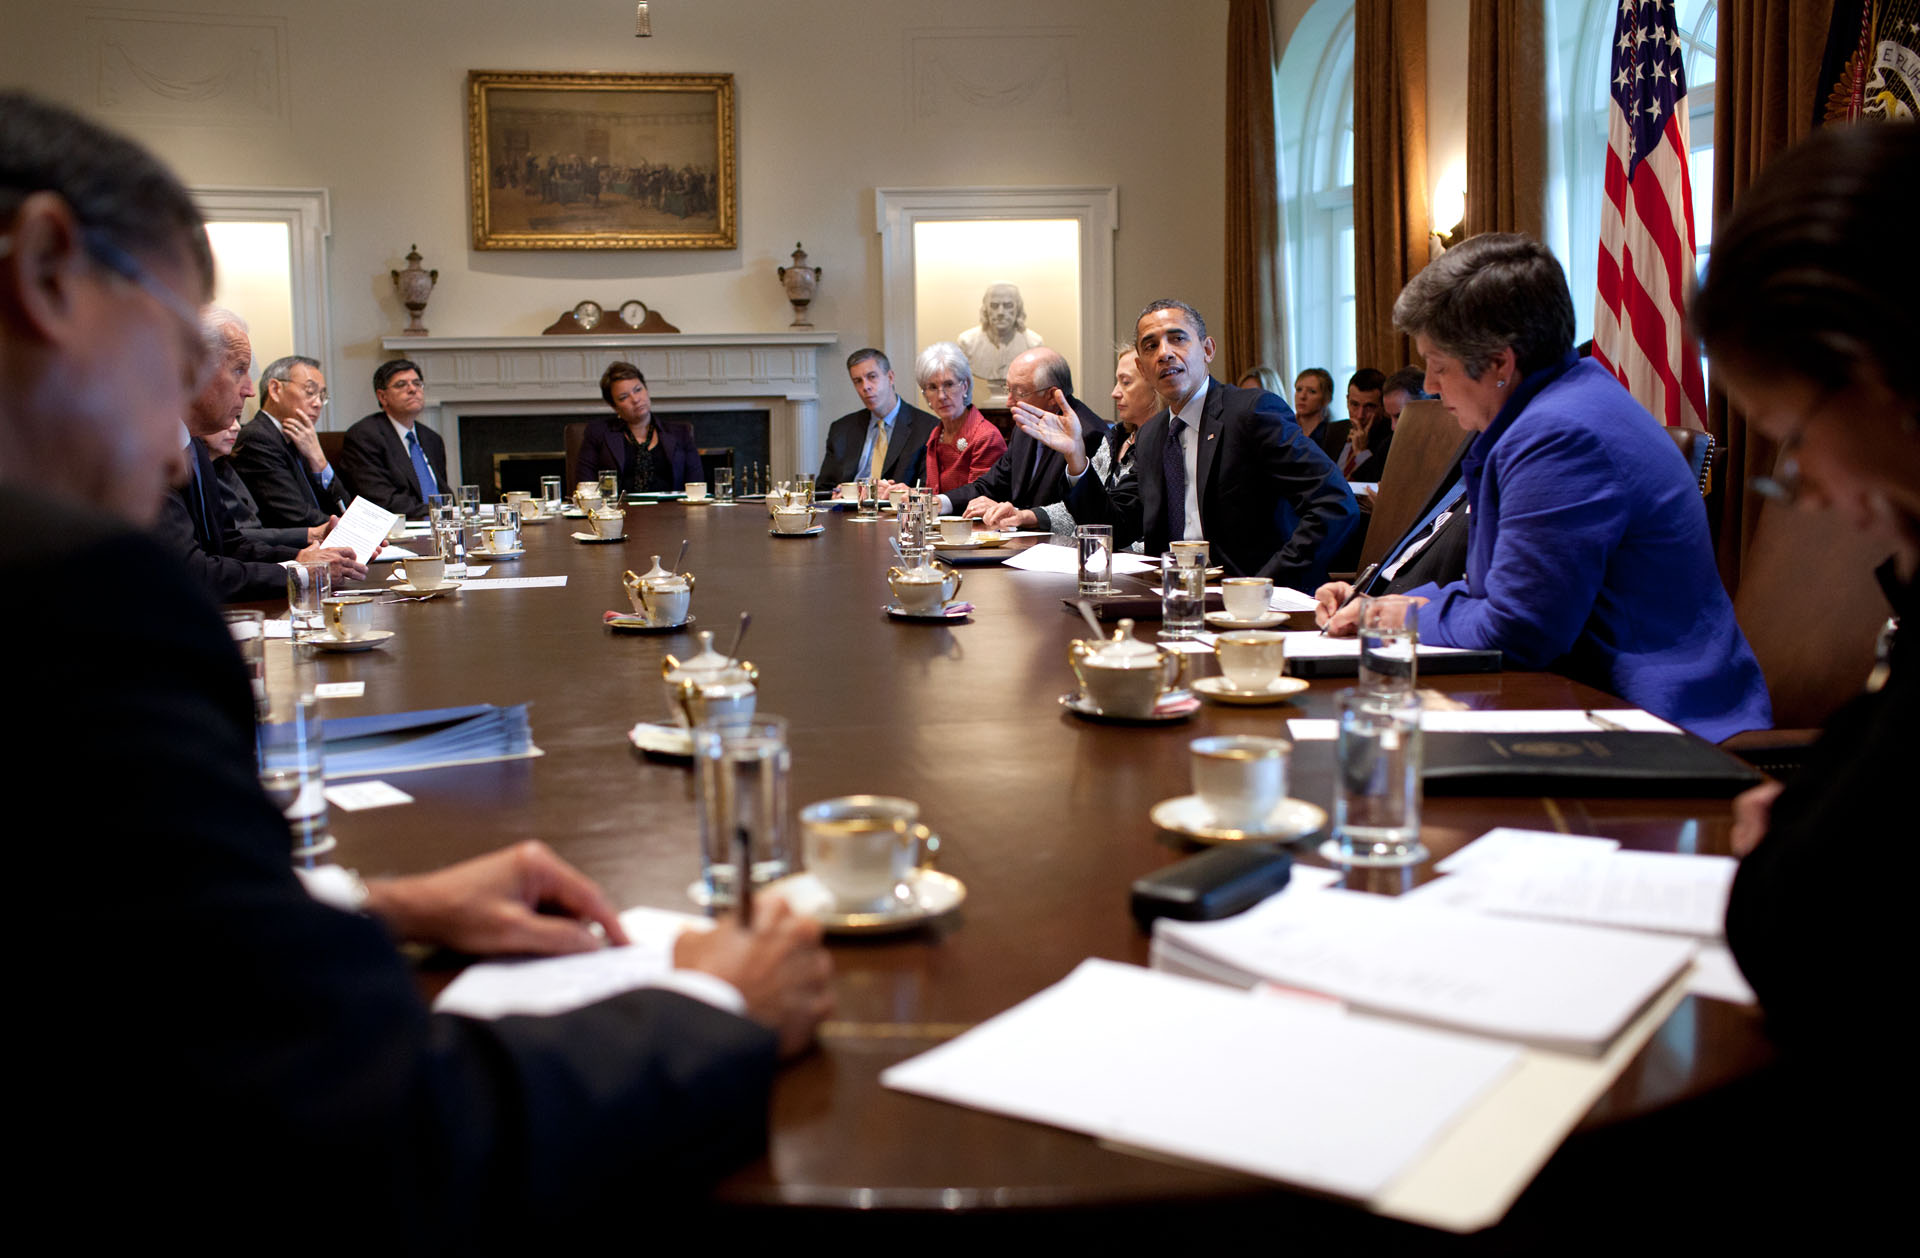 Obama And Cabinet President Obama Meets With Cabinet To Discuss Job Creation